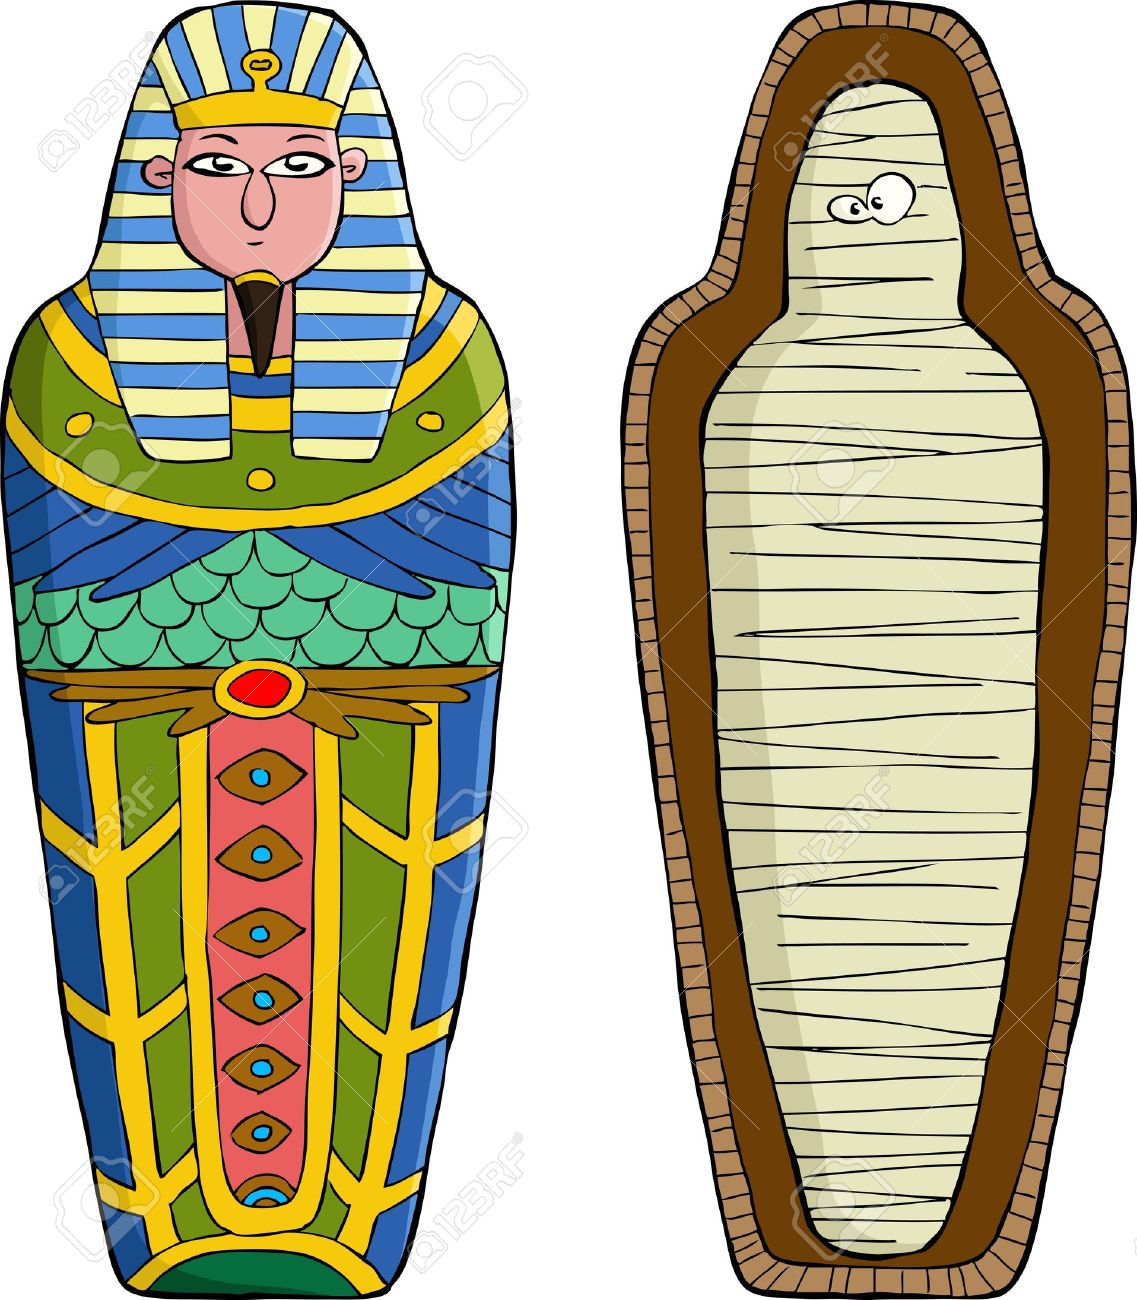 Egyptian clipart #14, Download drawings